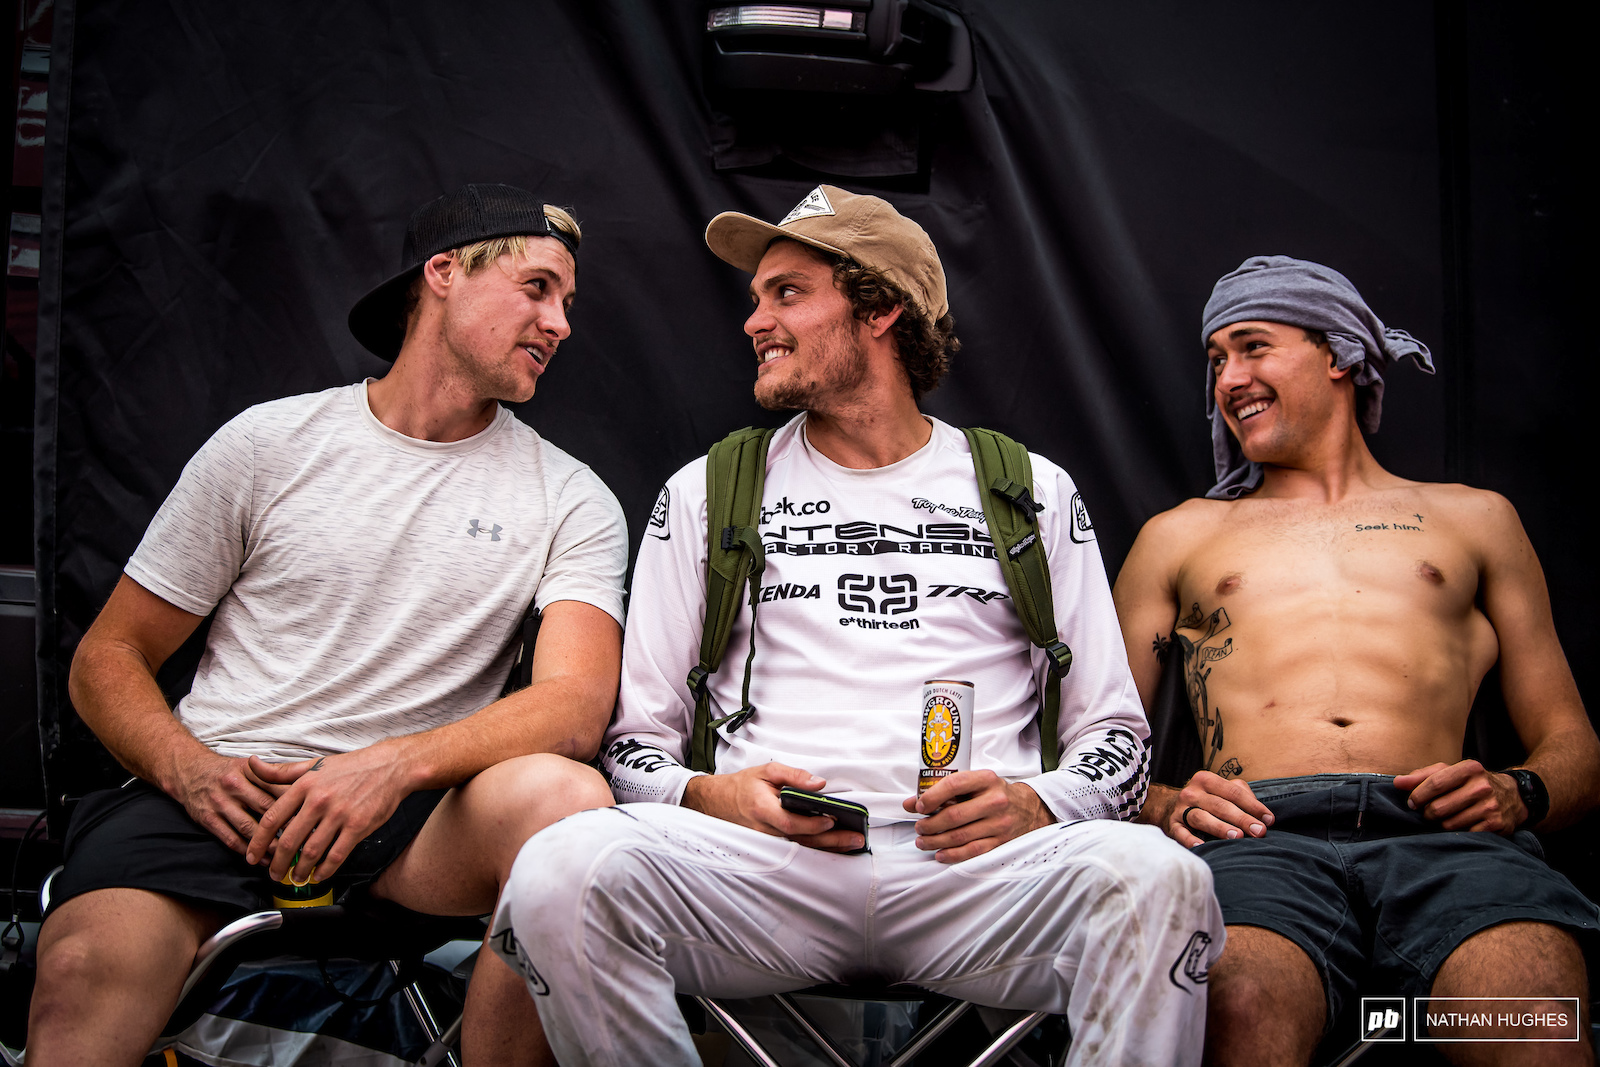 Moir and old teamies Harrison and Lucas talk the talk after two very different weeks of mixed fortunes at the races.